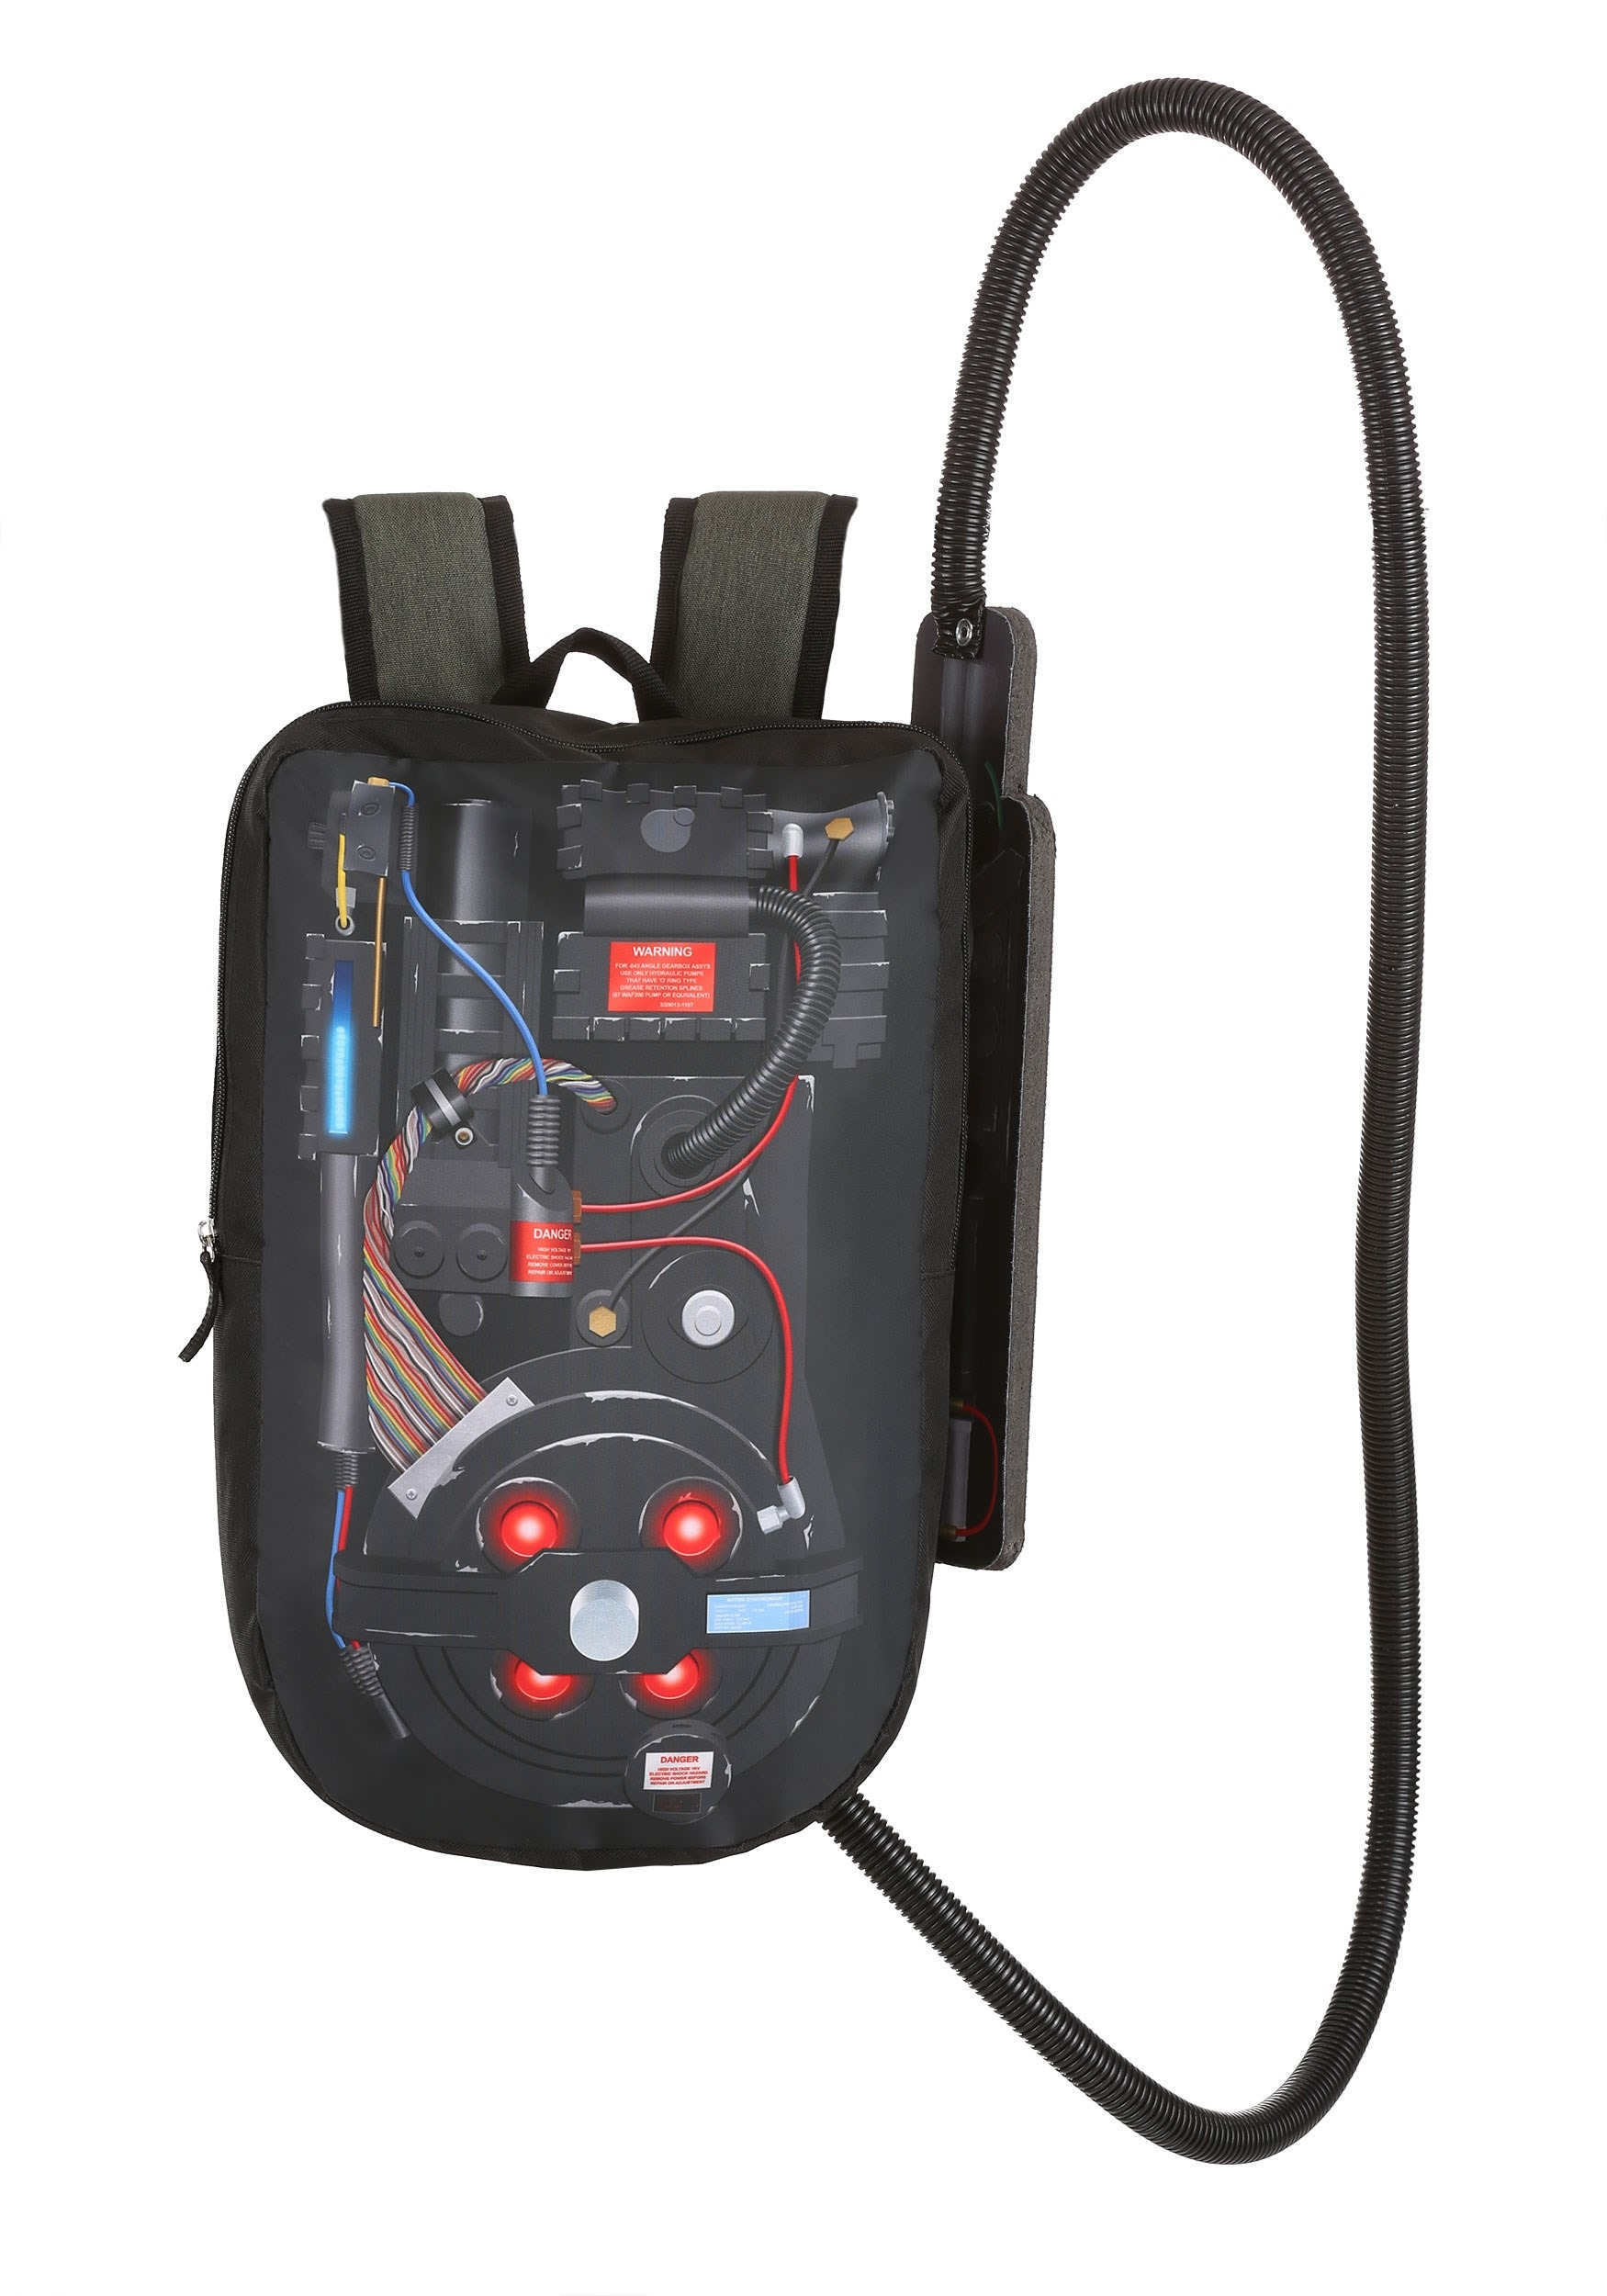 Ghostbuster Proton Backpack for Kids